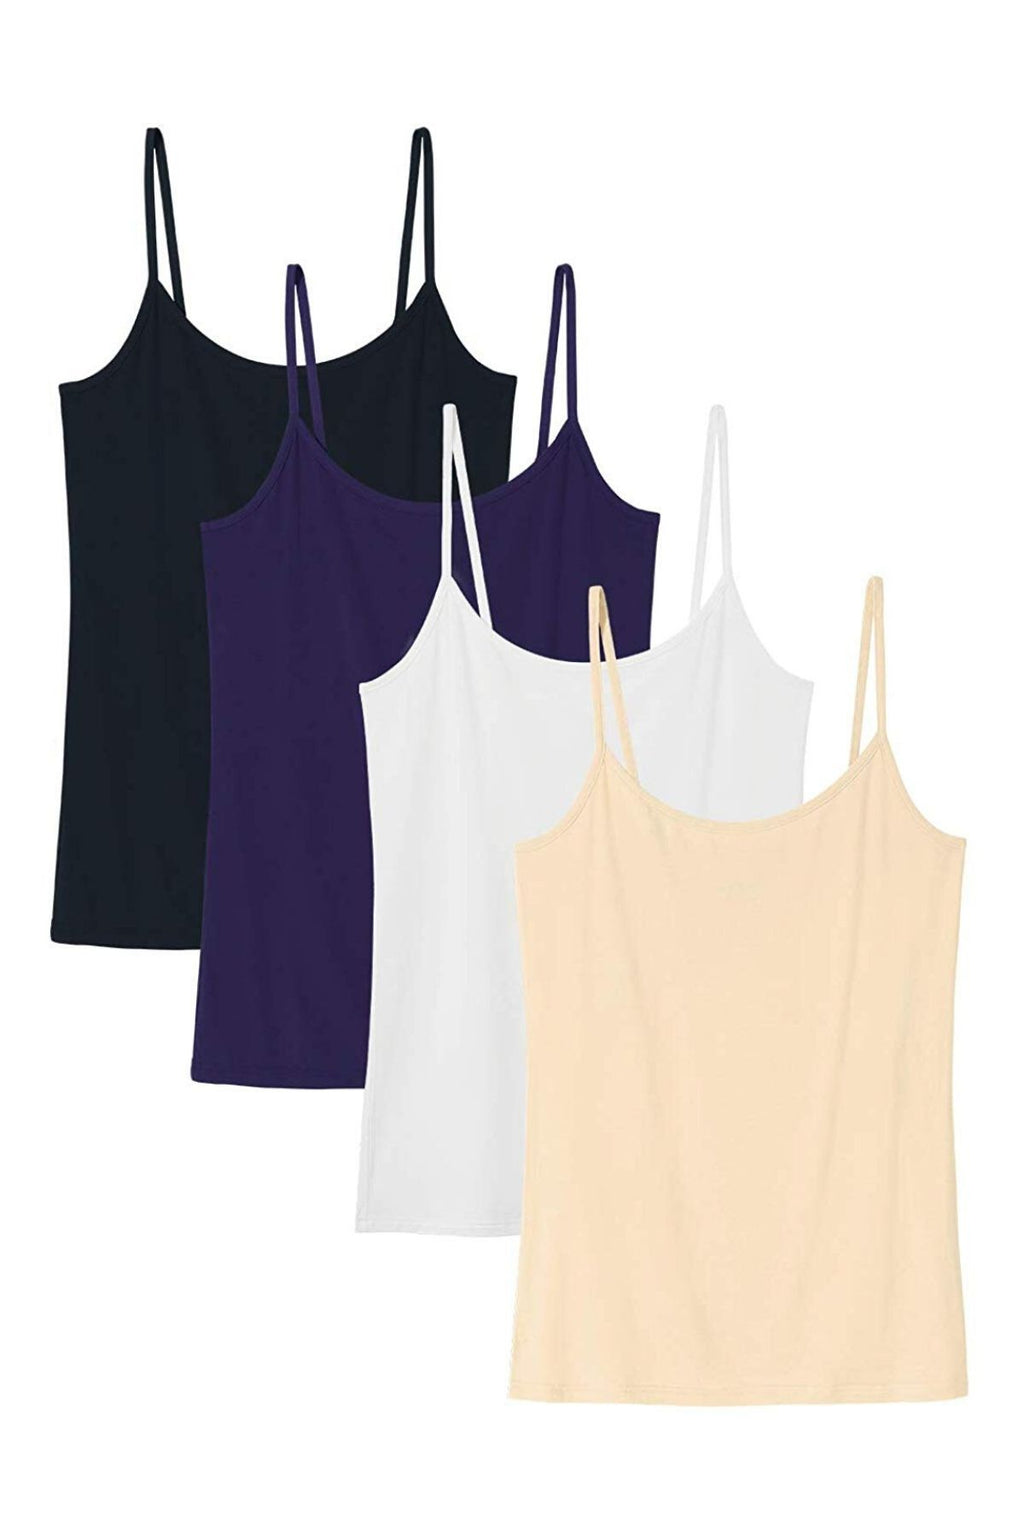 Basic Seamless Camisole from Tops Collection